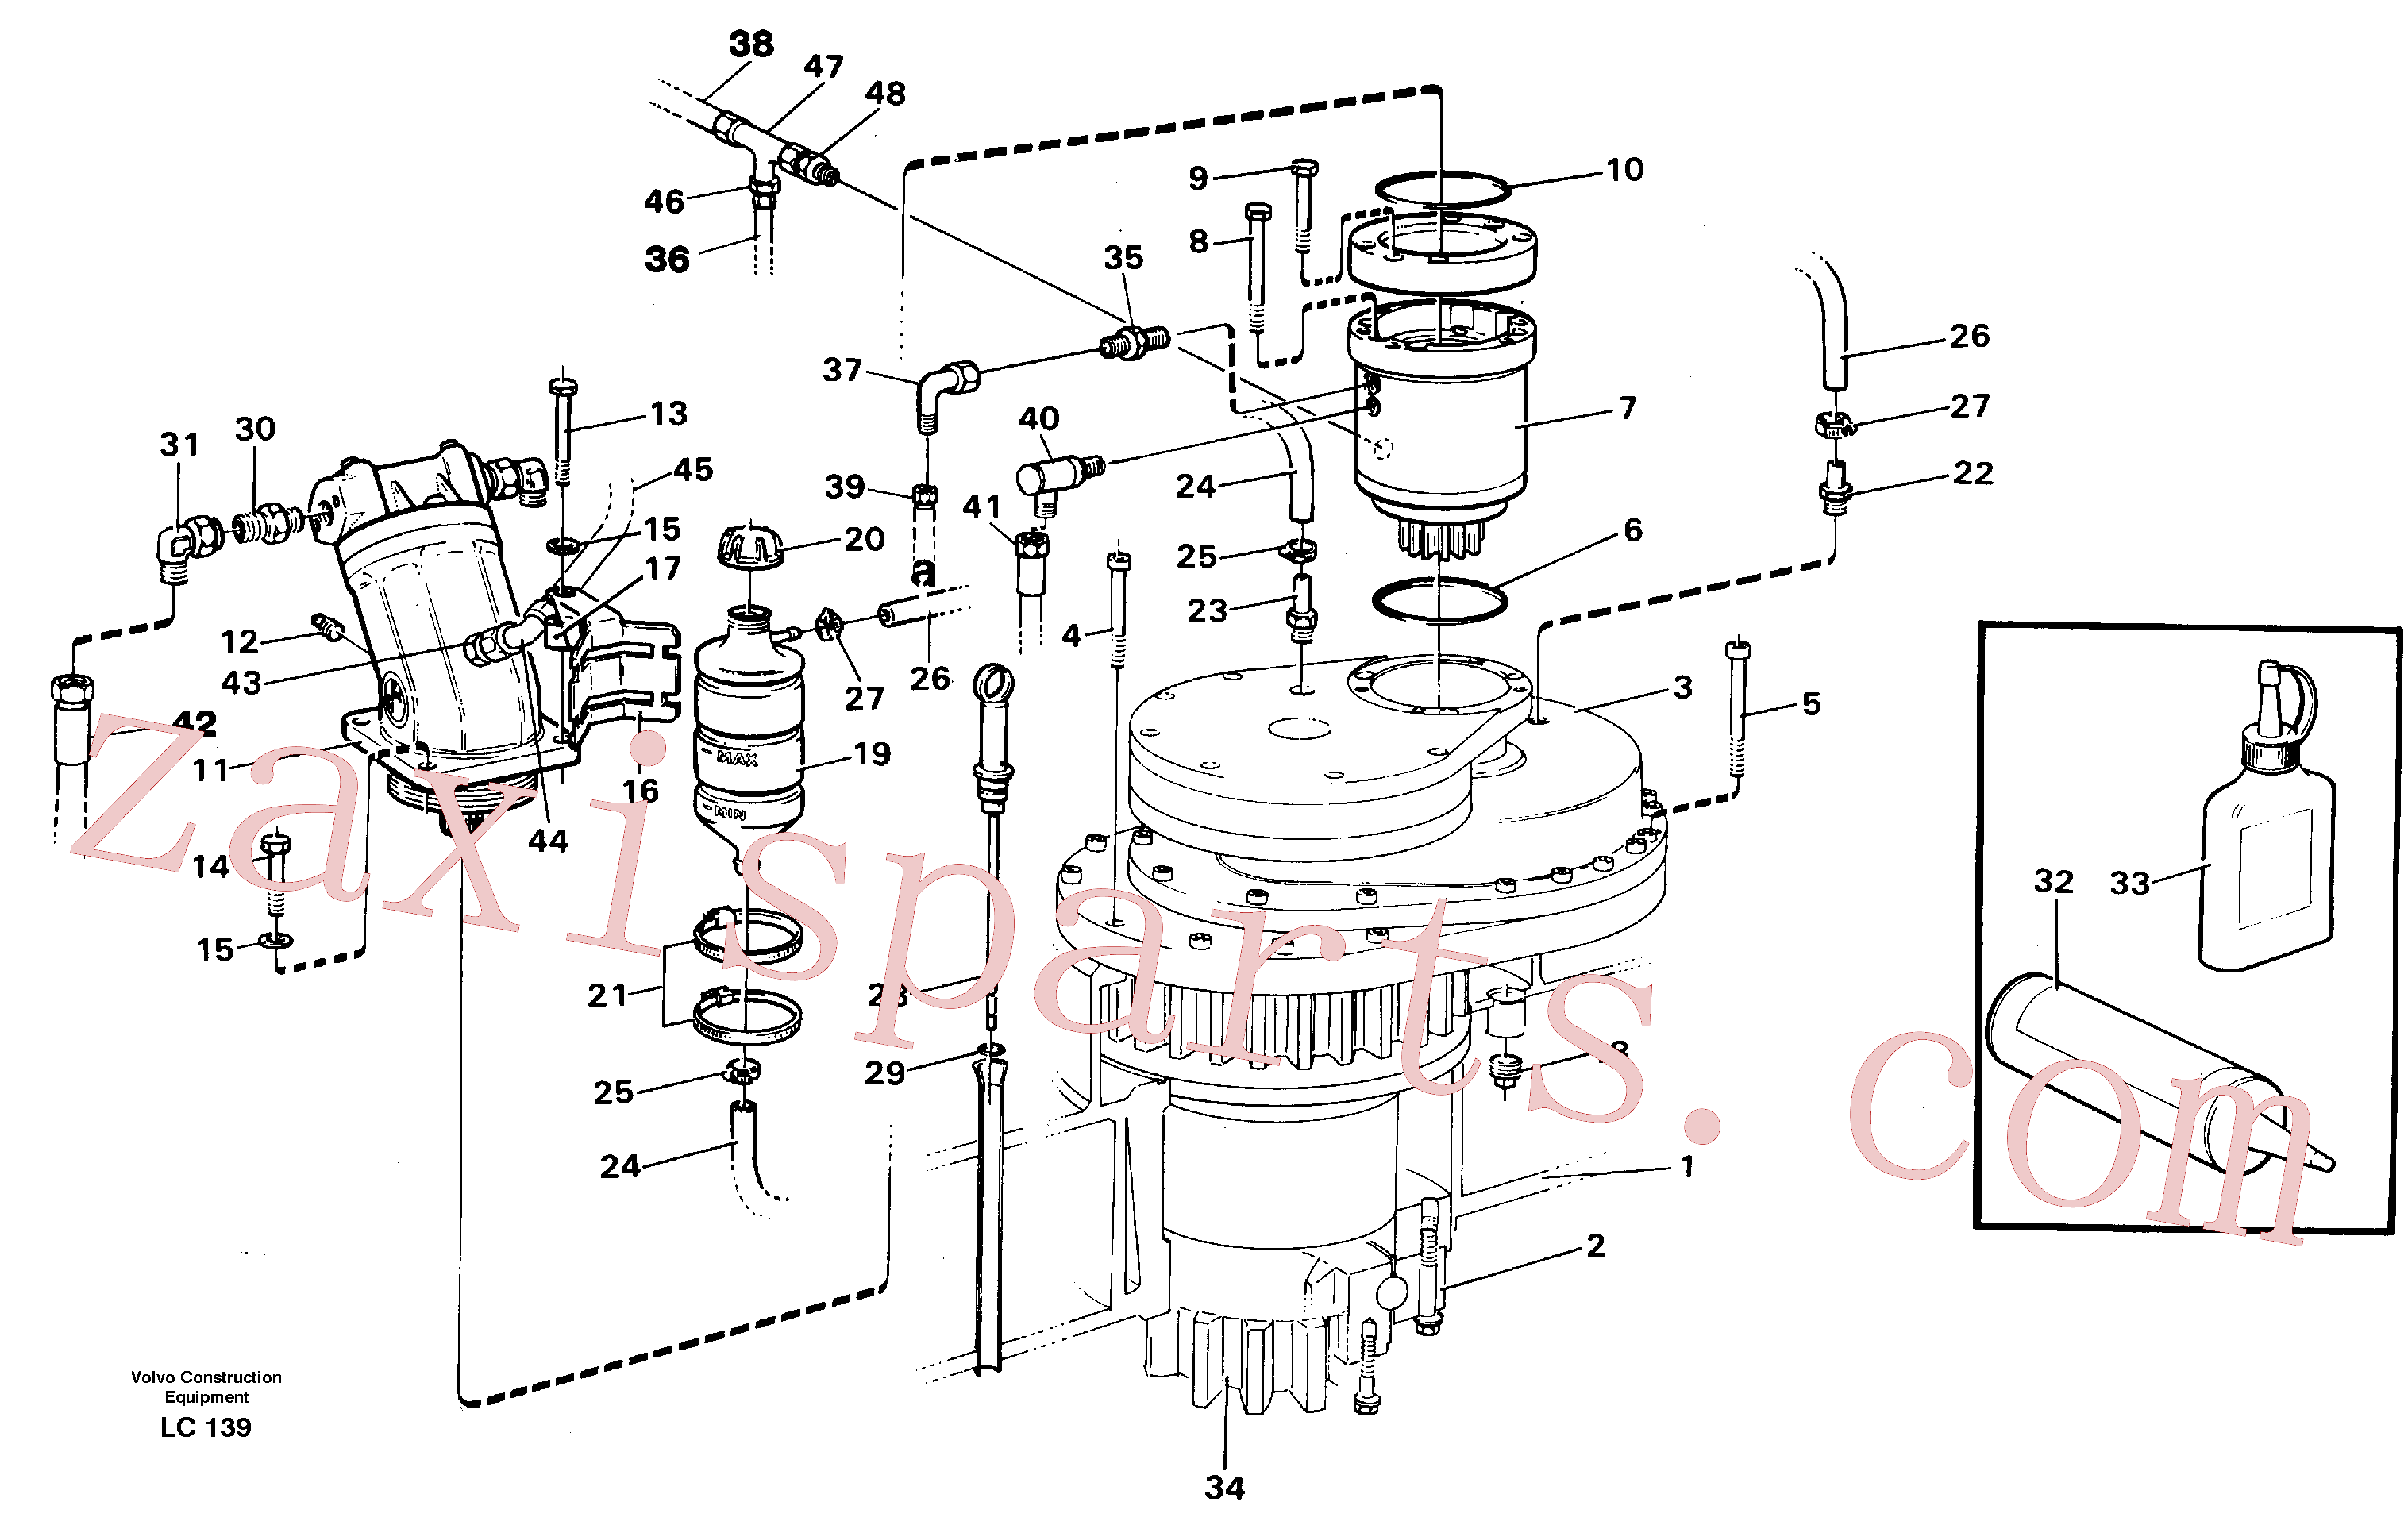 VOE14016813 for Volvo Superstructure with slew transmission(LC139 assembly)